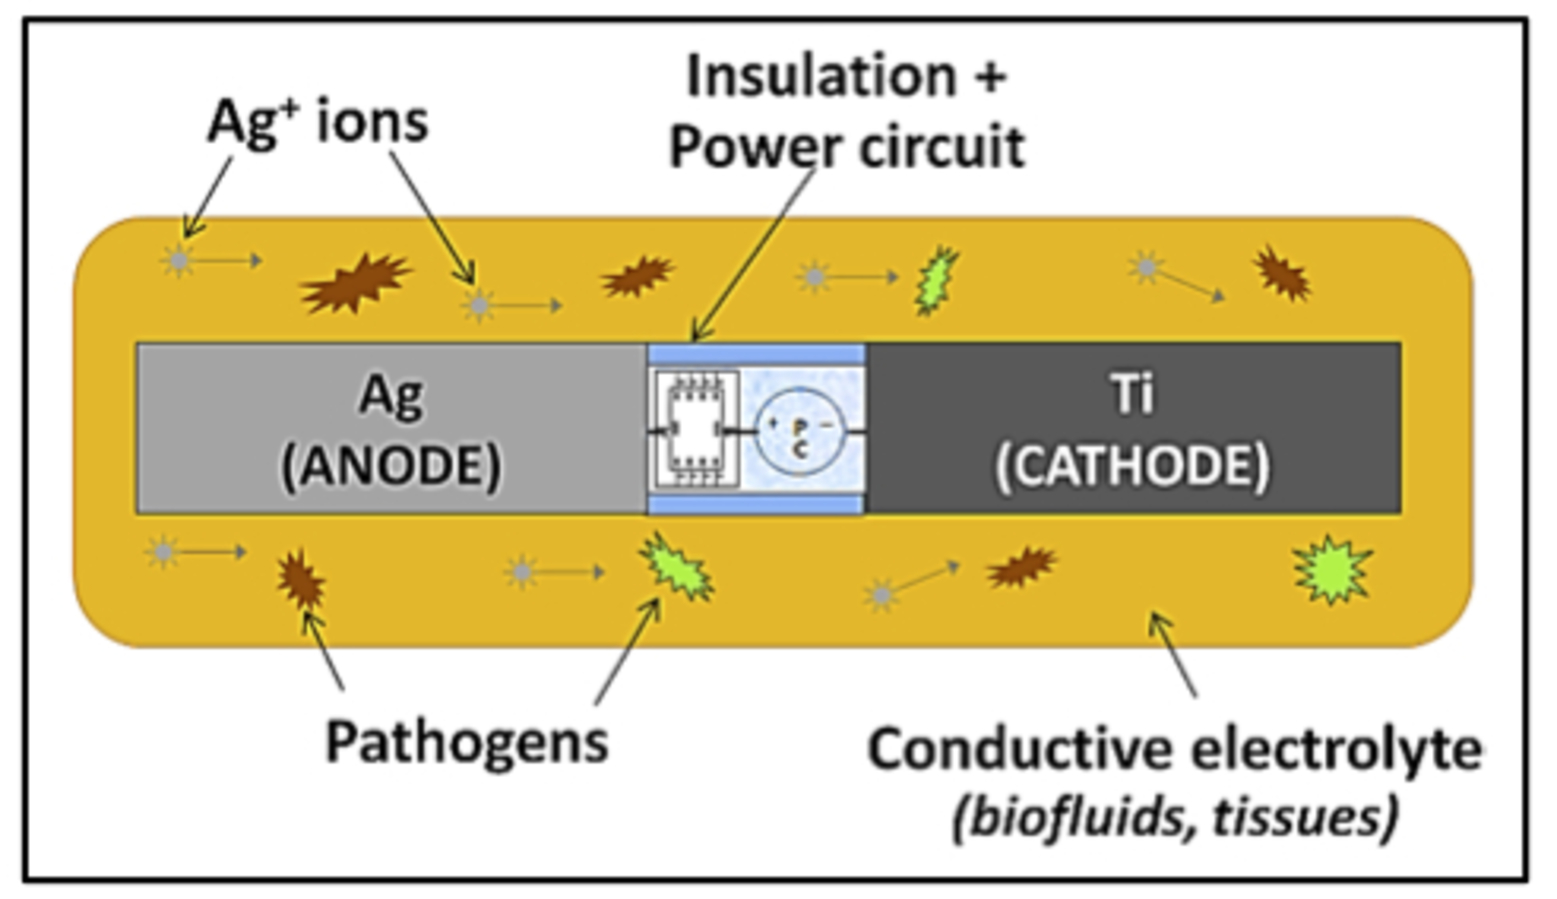 Silver Shines As Antibacterial For Medical Implants Circuit Diagram Nc Schematic Of Ions Dispersing From The Implant And Fighting Pathogens Credit Rohan Shirwaiker Cc By Nd